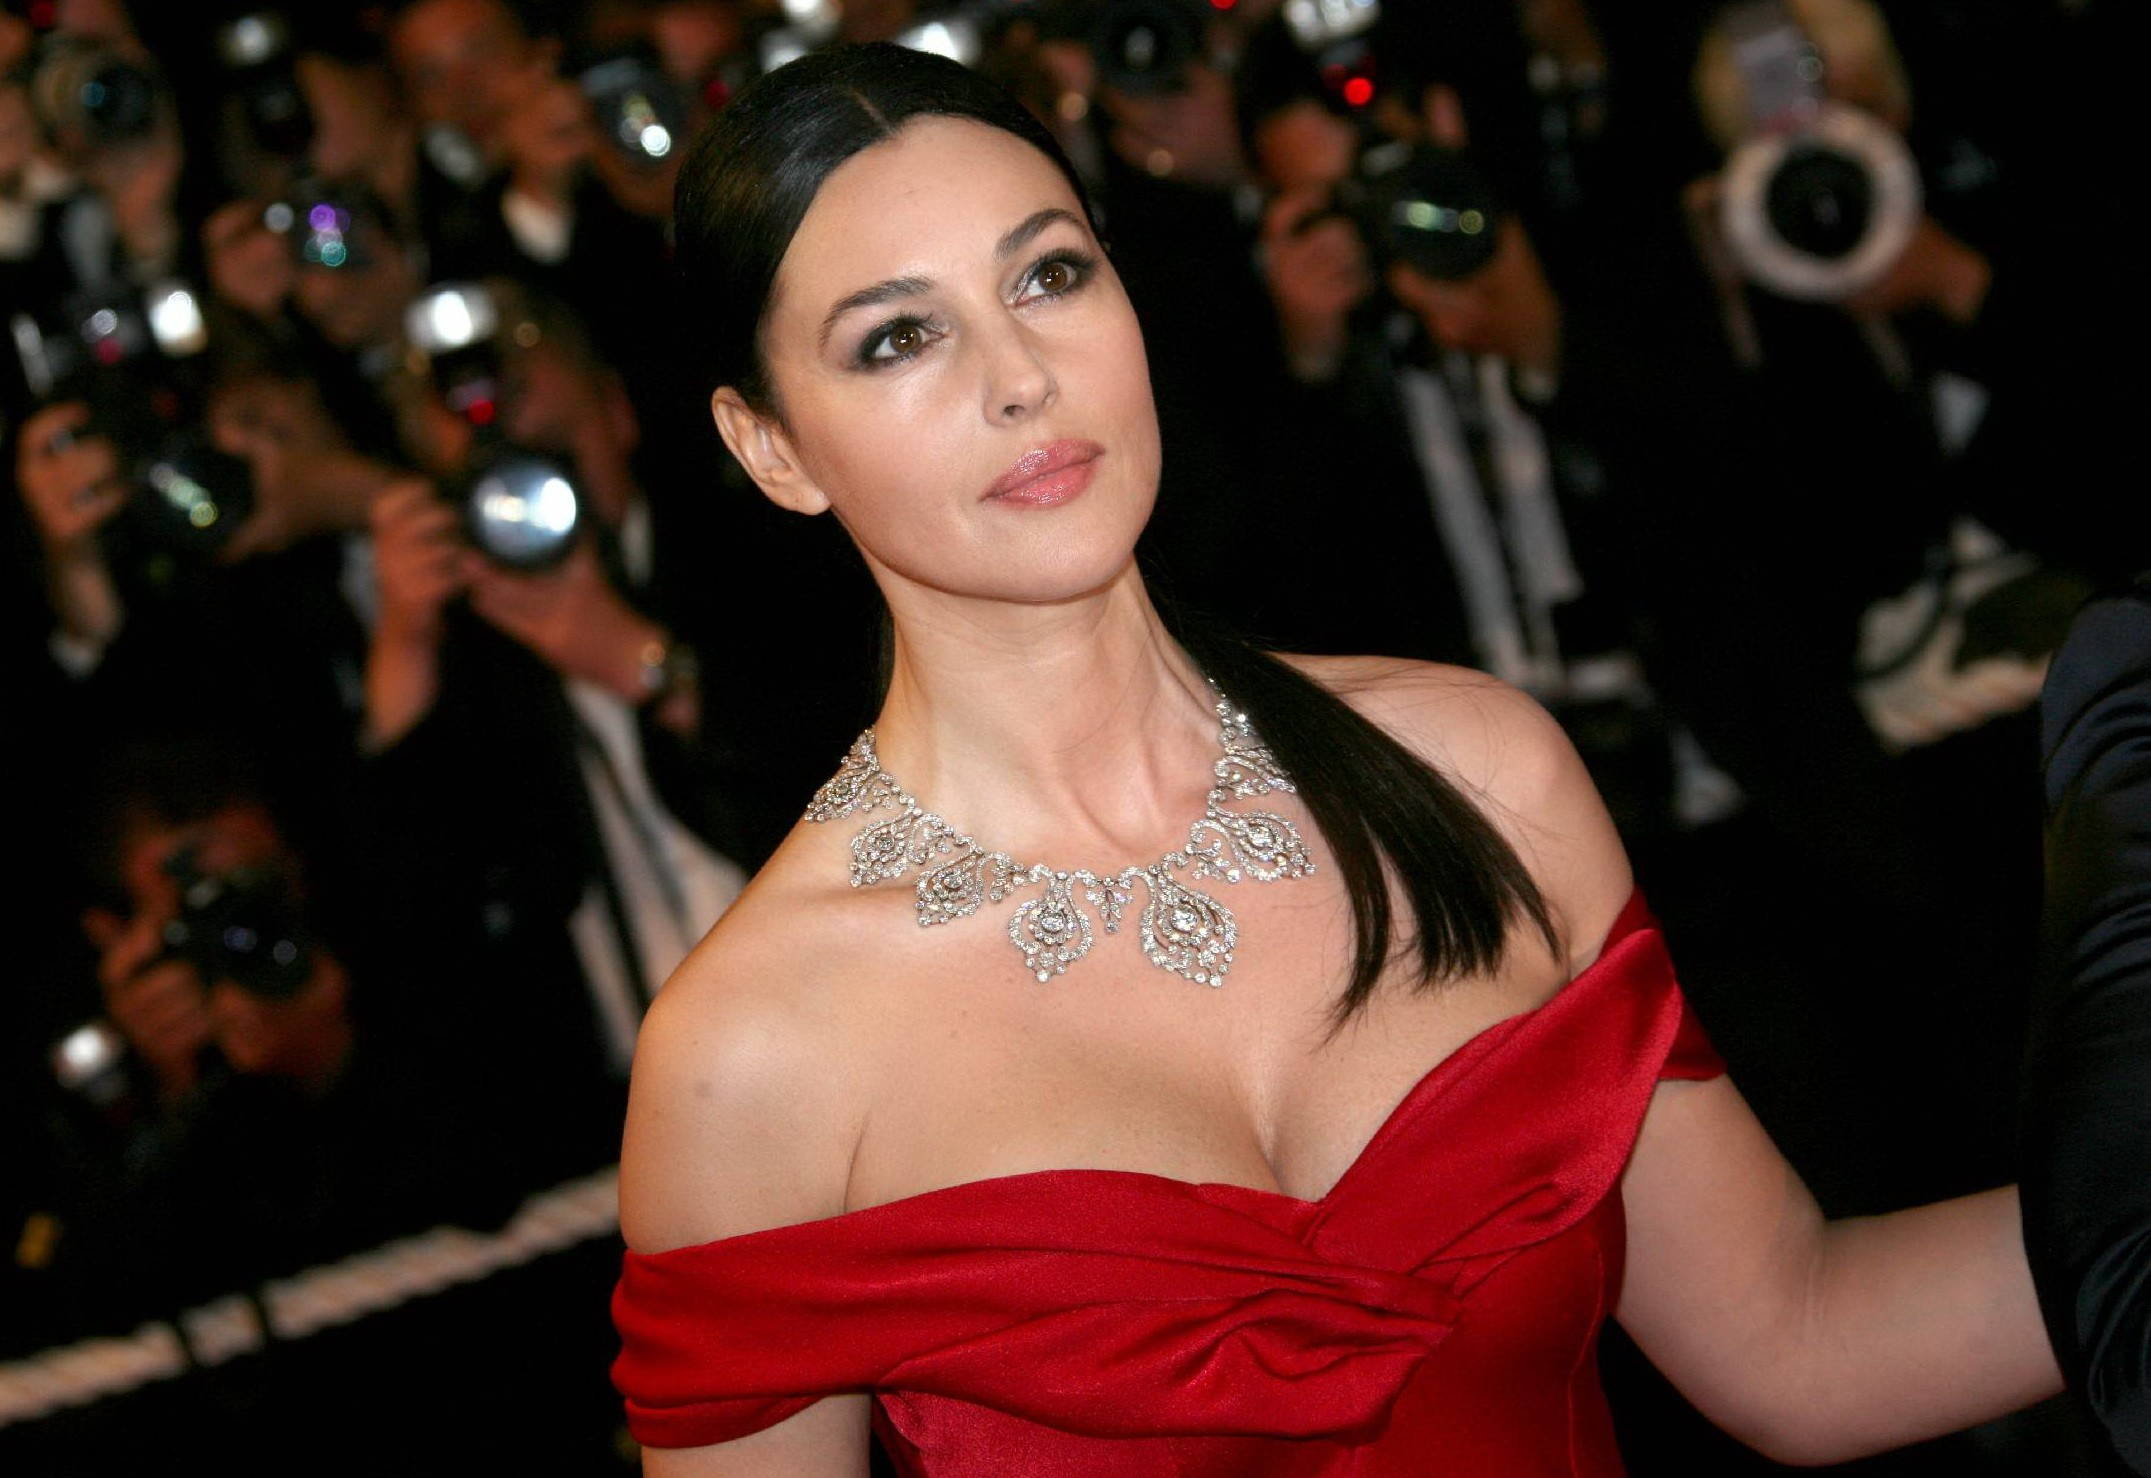 James Bond Iphone Wallpaper Monica Bellucci Hd Wallpaper Background Image